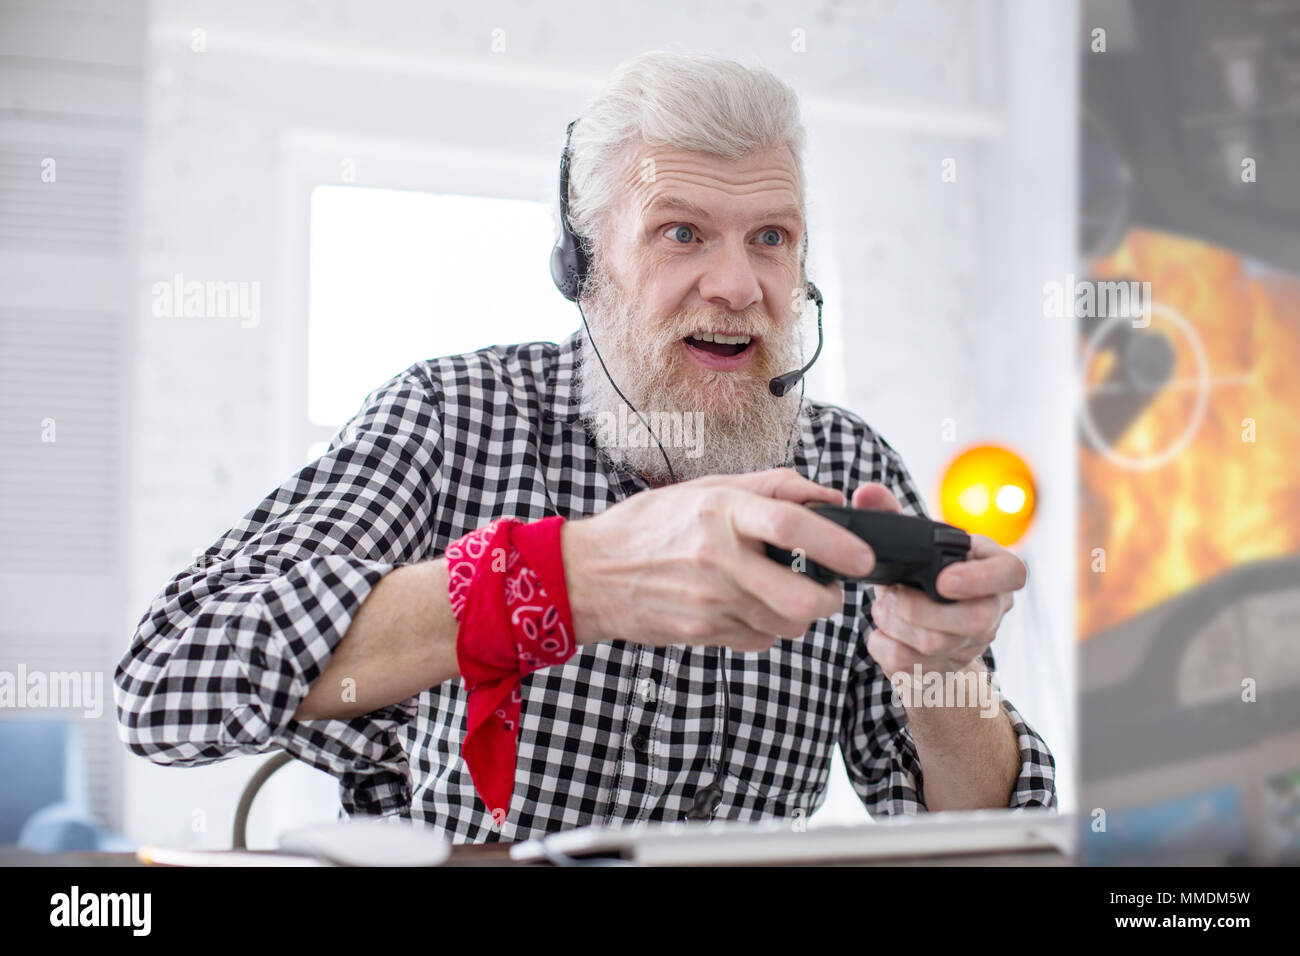 White-haired senior man being excited about playing video game - Stock Image